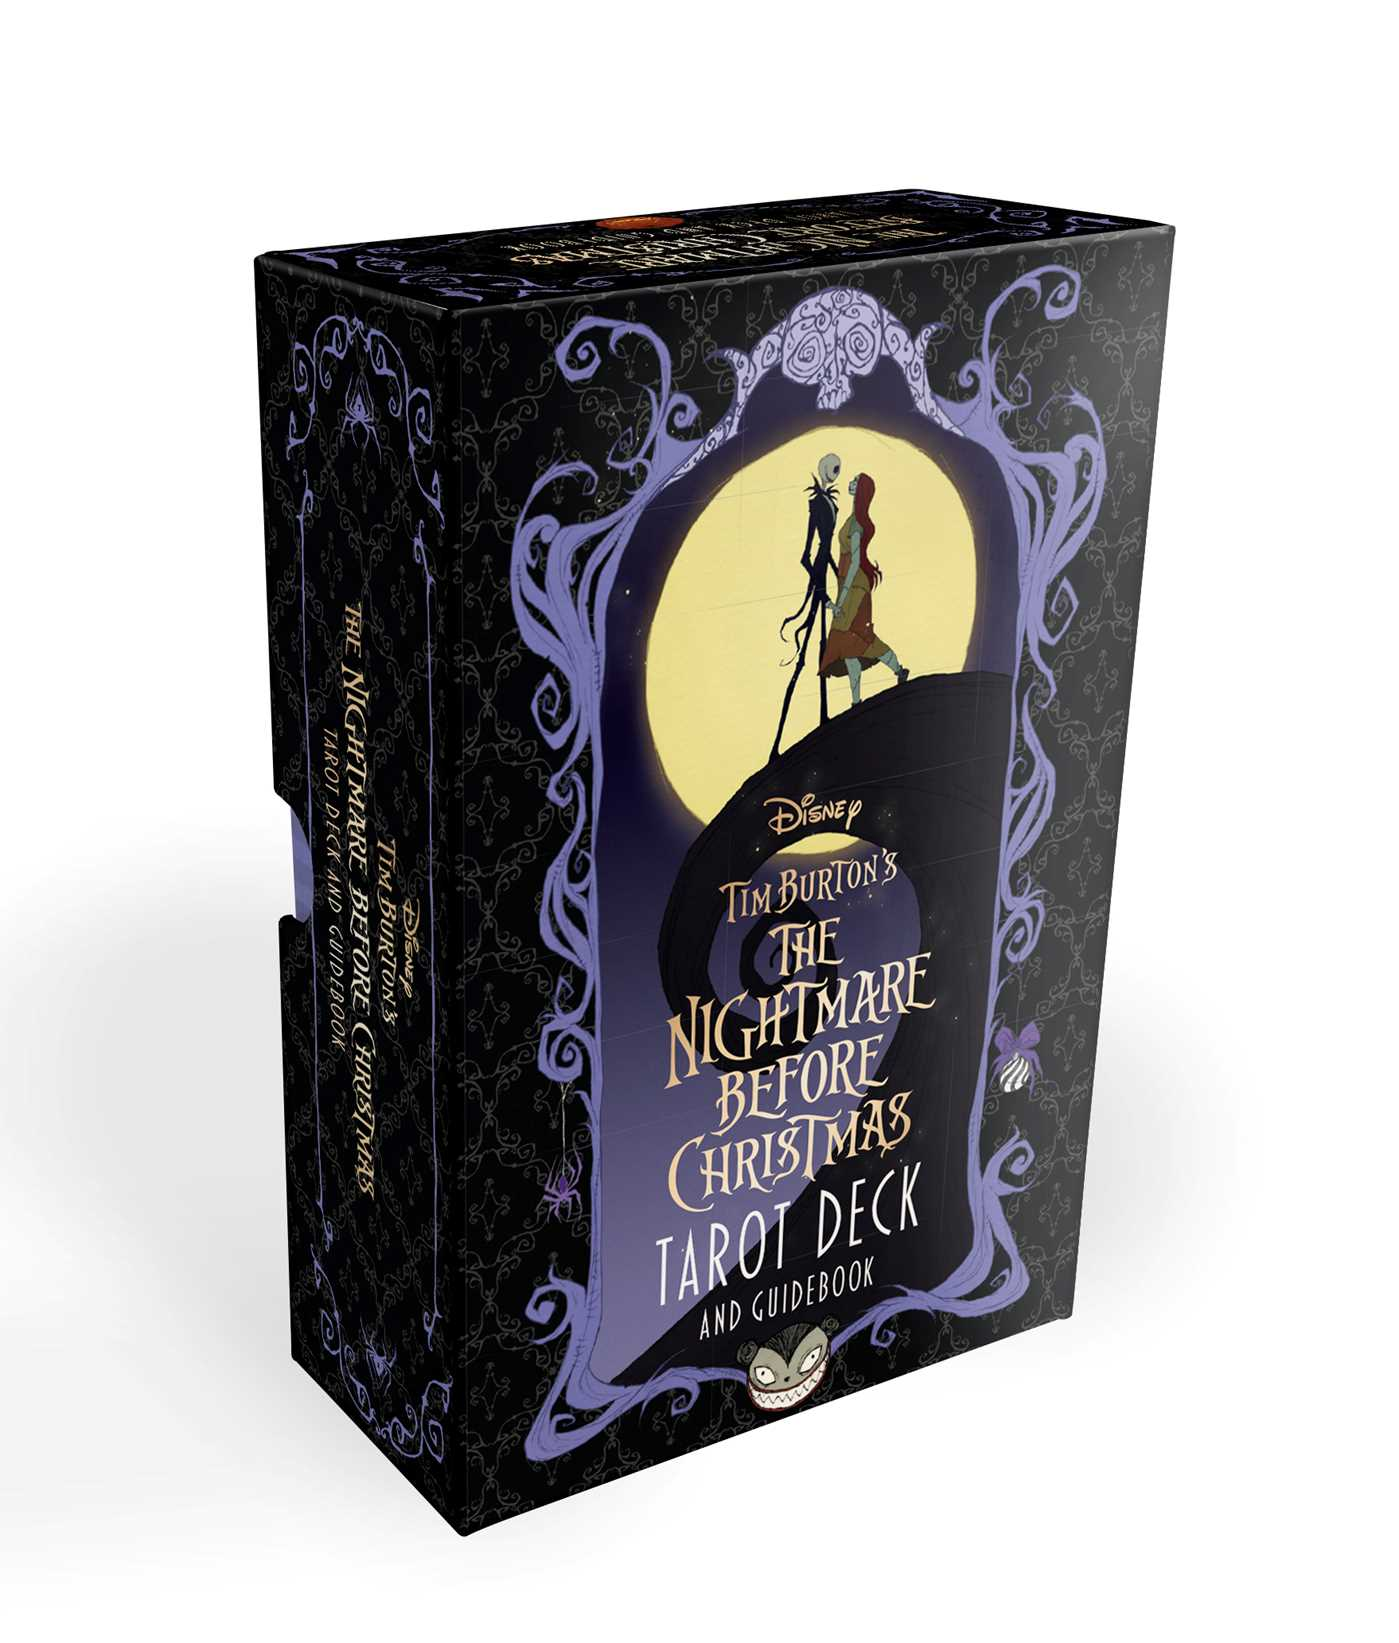 The Nightmare Before Christmas Tarot Deck and Guidebook | Faith & Spirituality